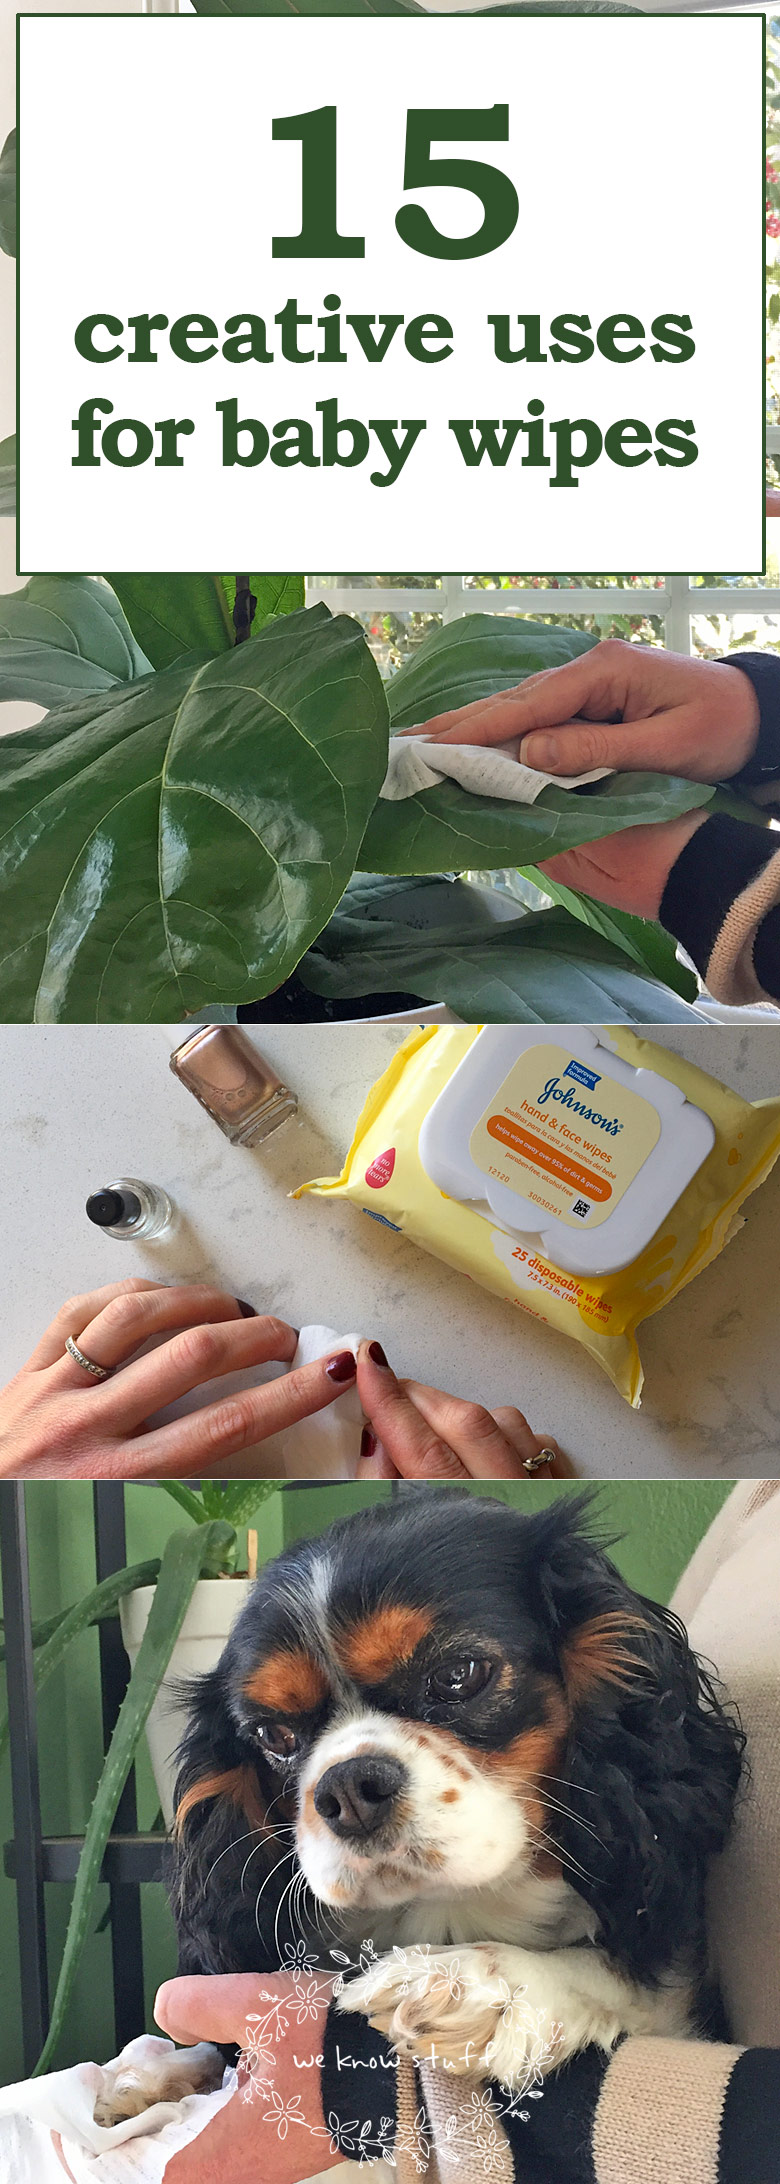 Baby wipes have helped me get out of some pretty sticky situations over the years, so we came up with 15 Creative Uses For Baby Wipes to share with all of you.